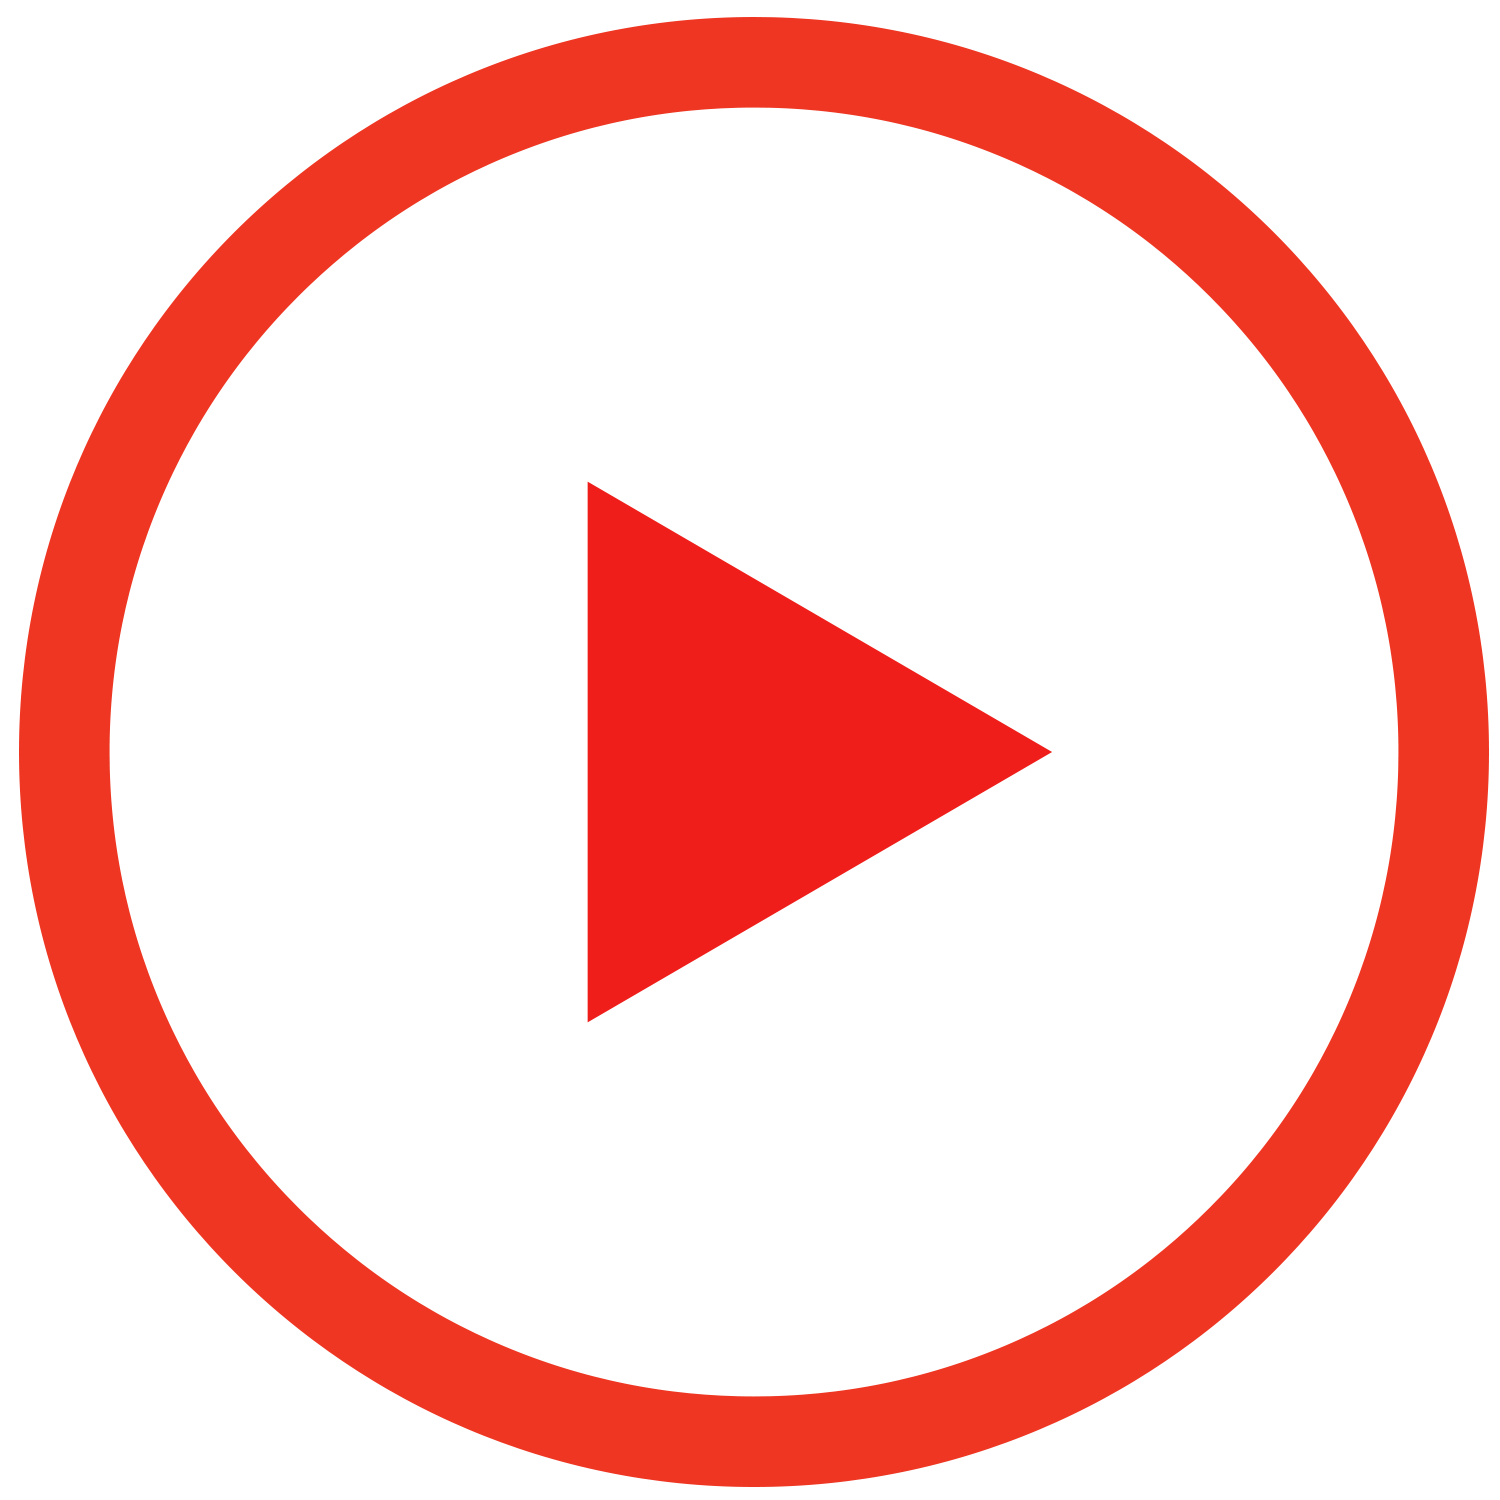 Play Red Outline Button - Play Button PNG